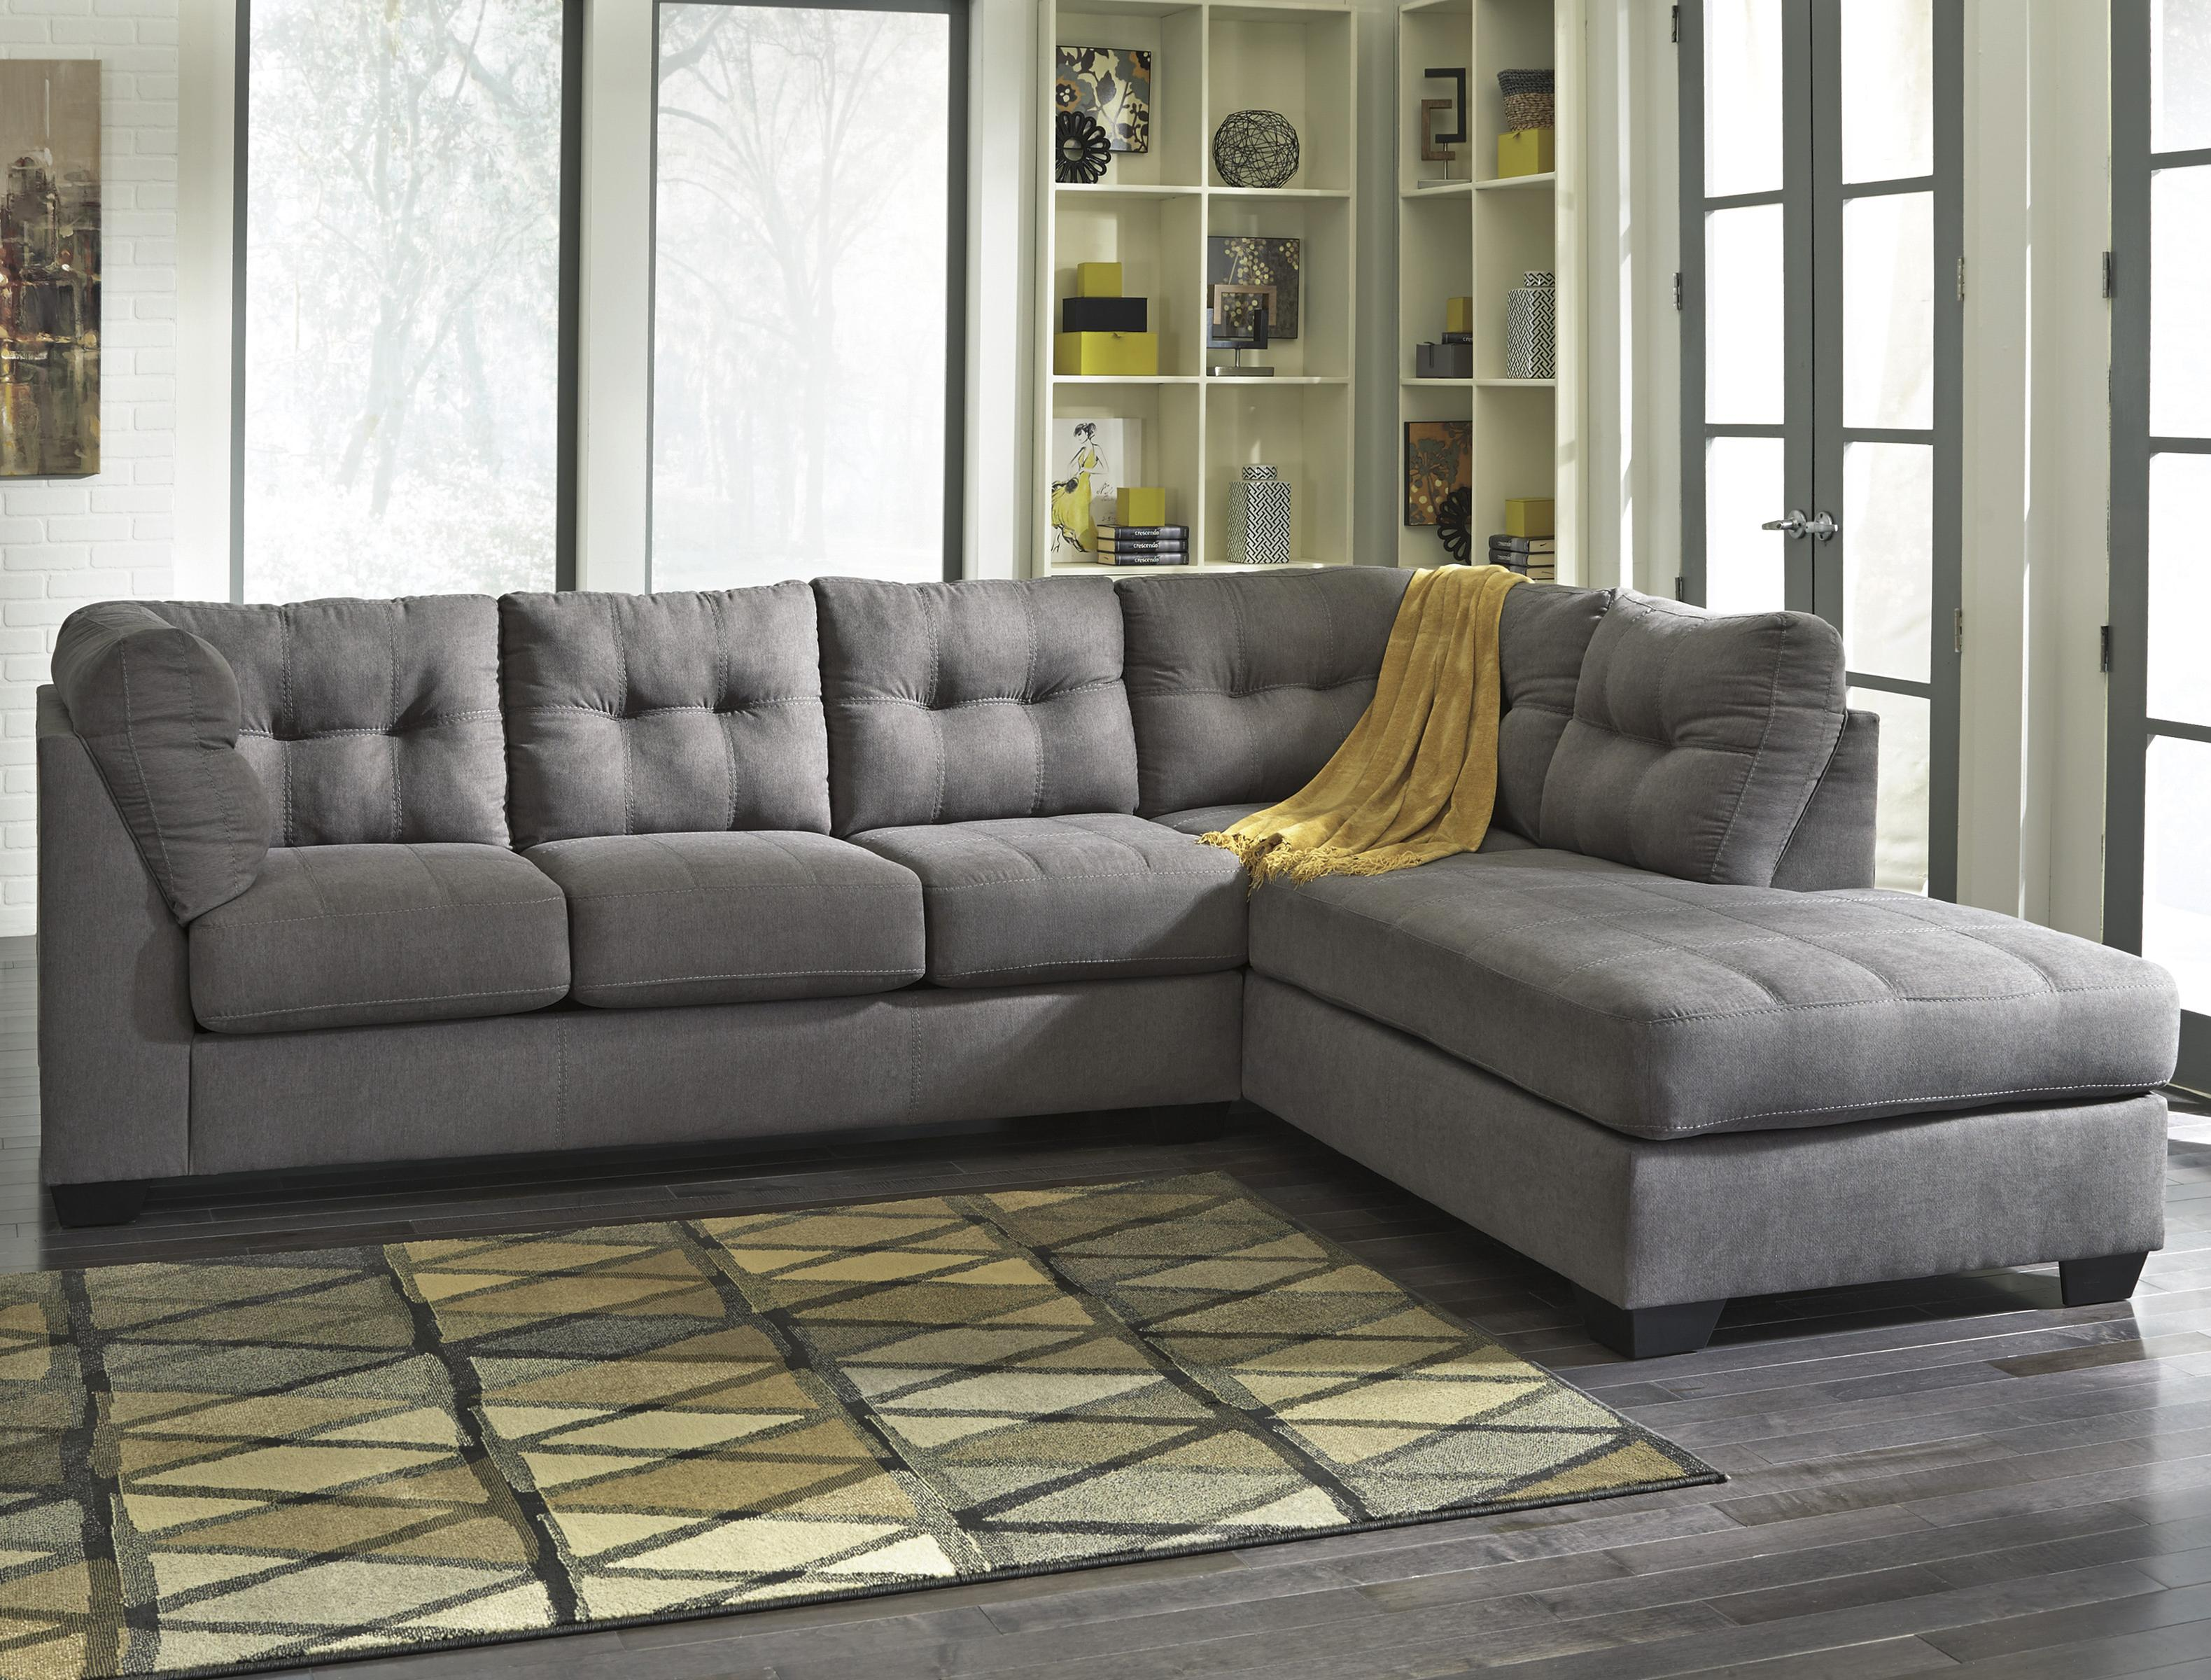 Benchcraft Maier Charcoal 2 Piece Sectional w Sleeper Sofa